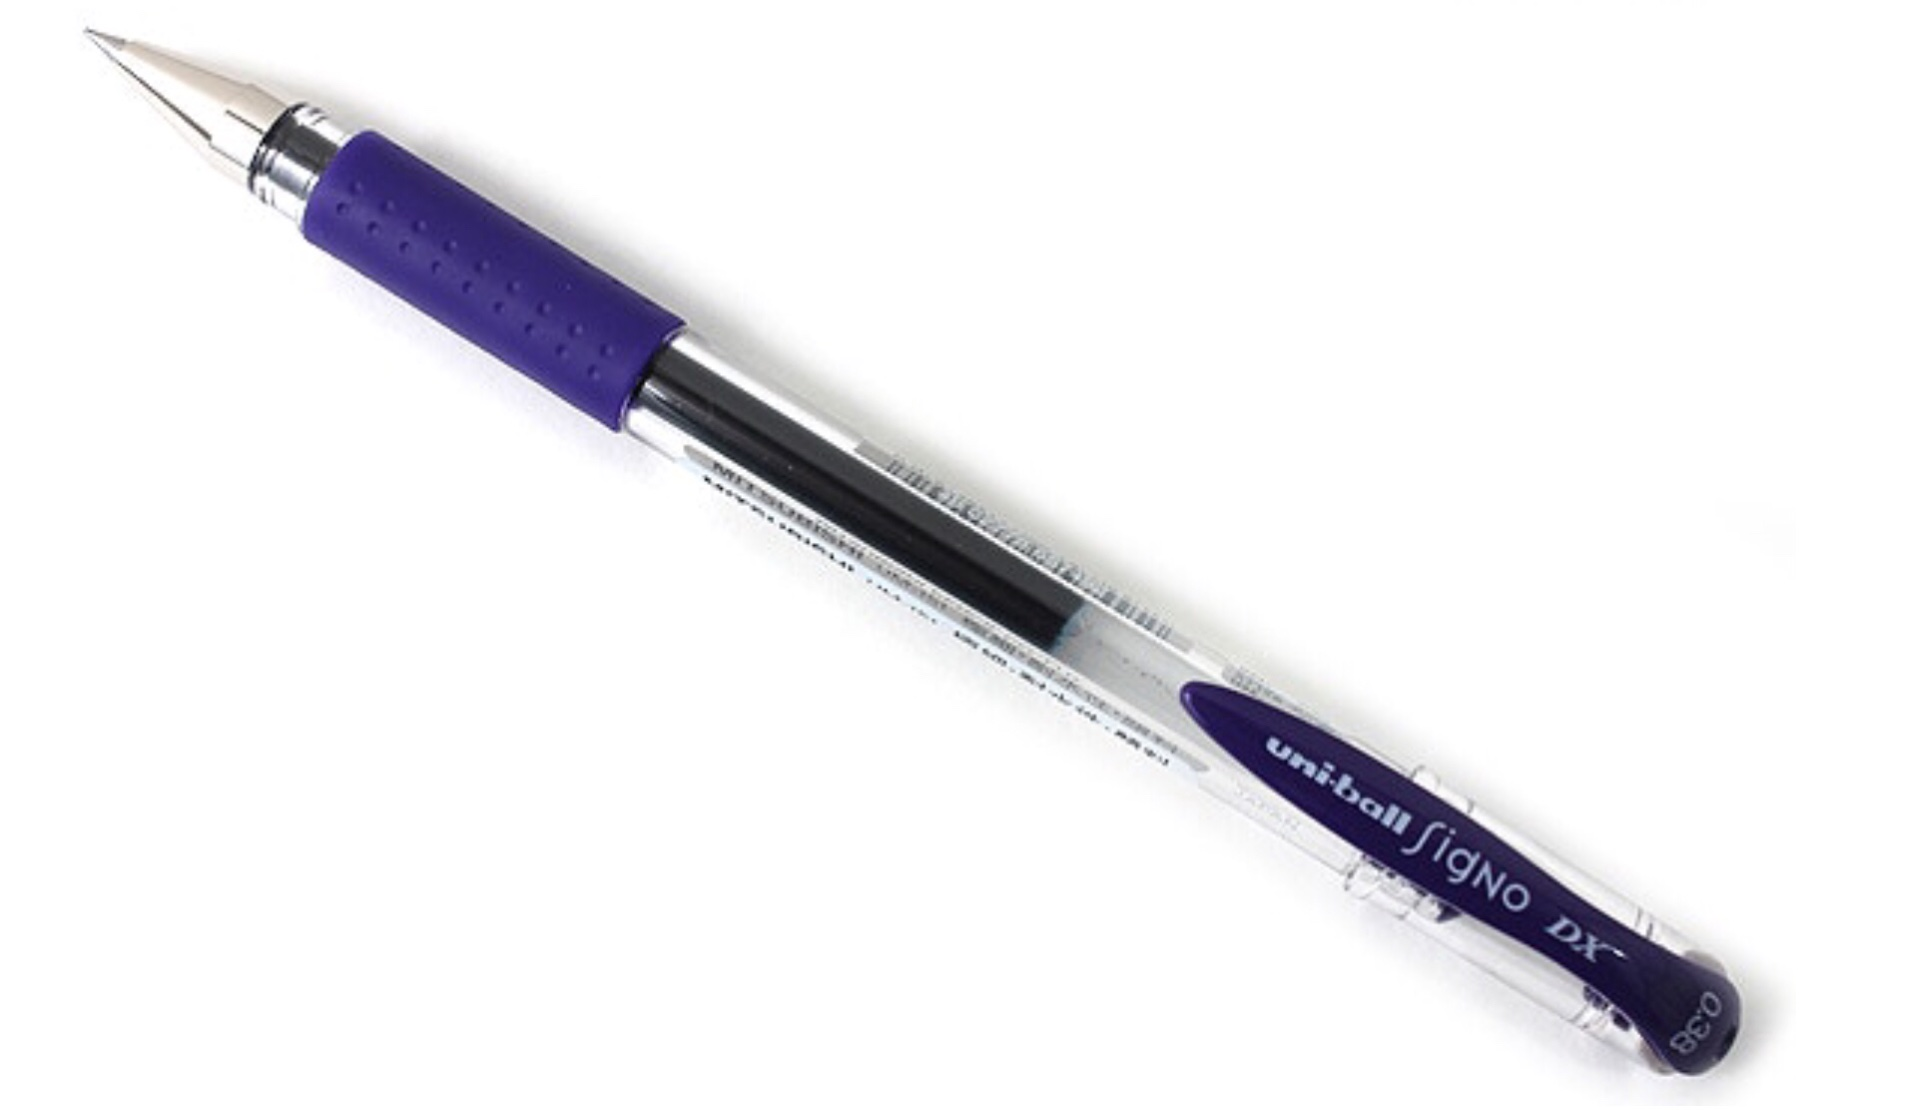 uni-ball-signo-dx-gel-pen-in-lavender-black